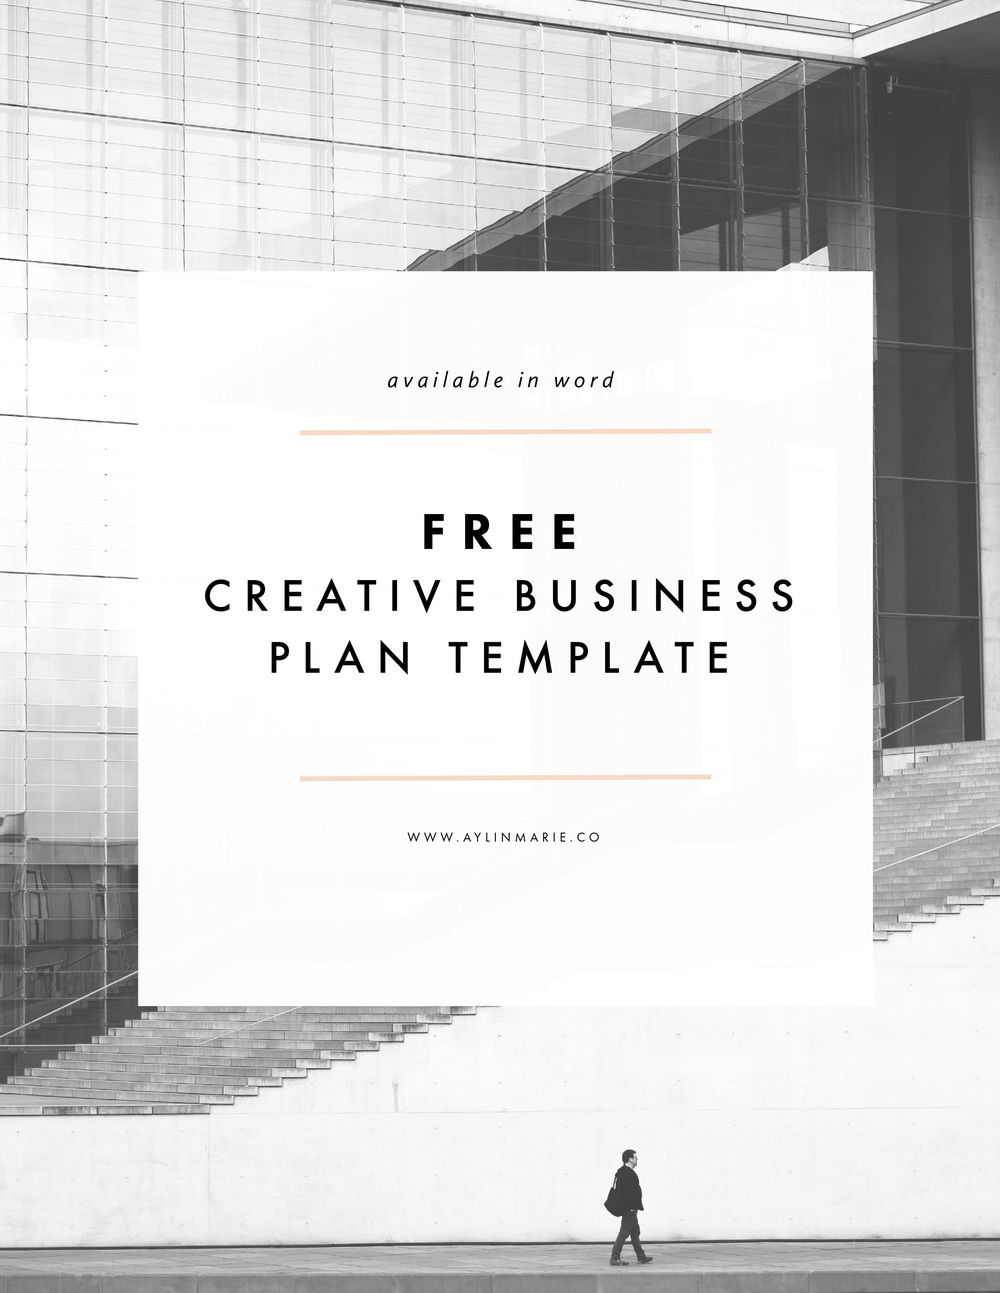 Freebie creative business plan template aylin marie freebie creative business plan template flashek Images